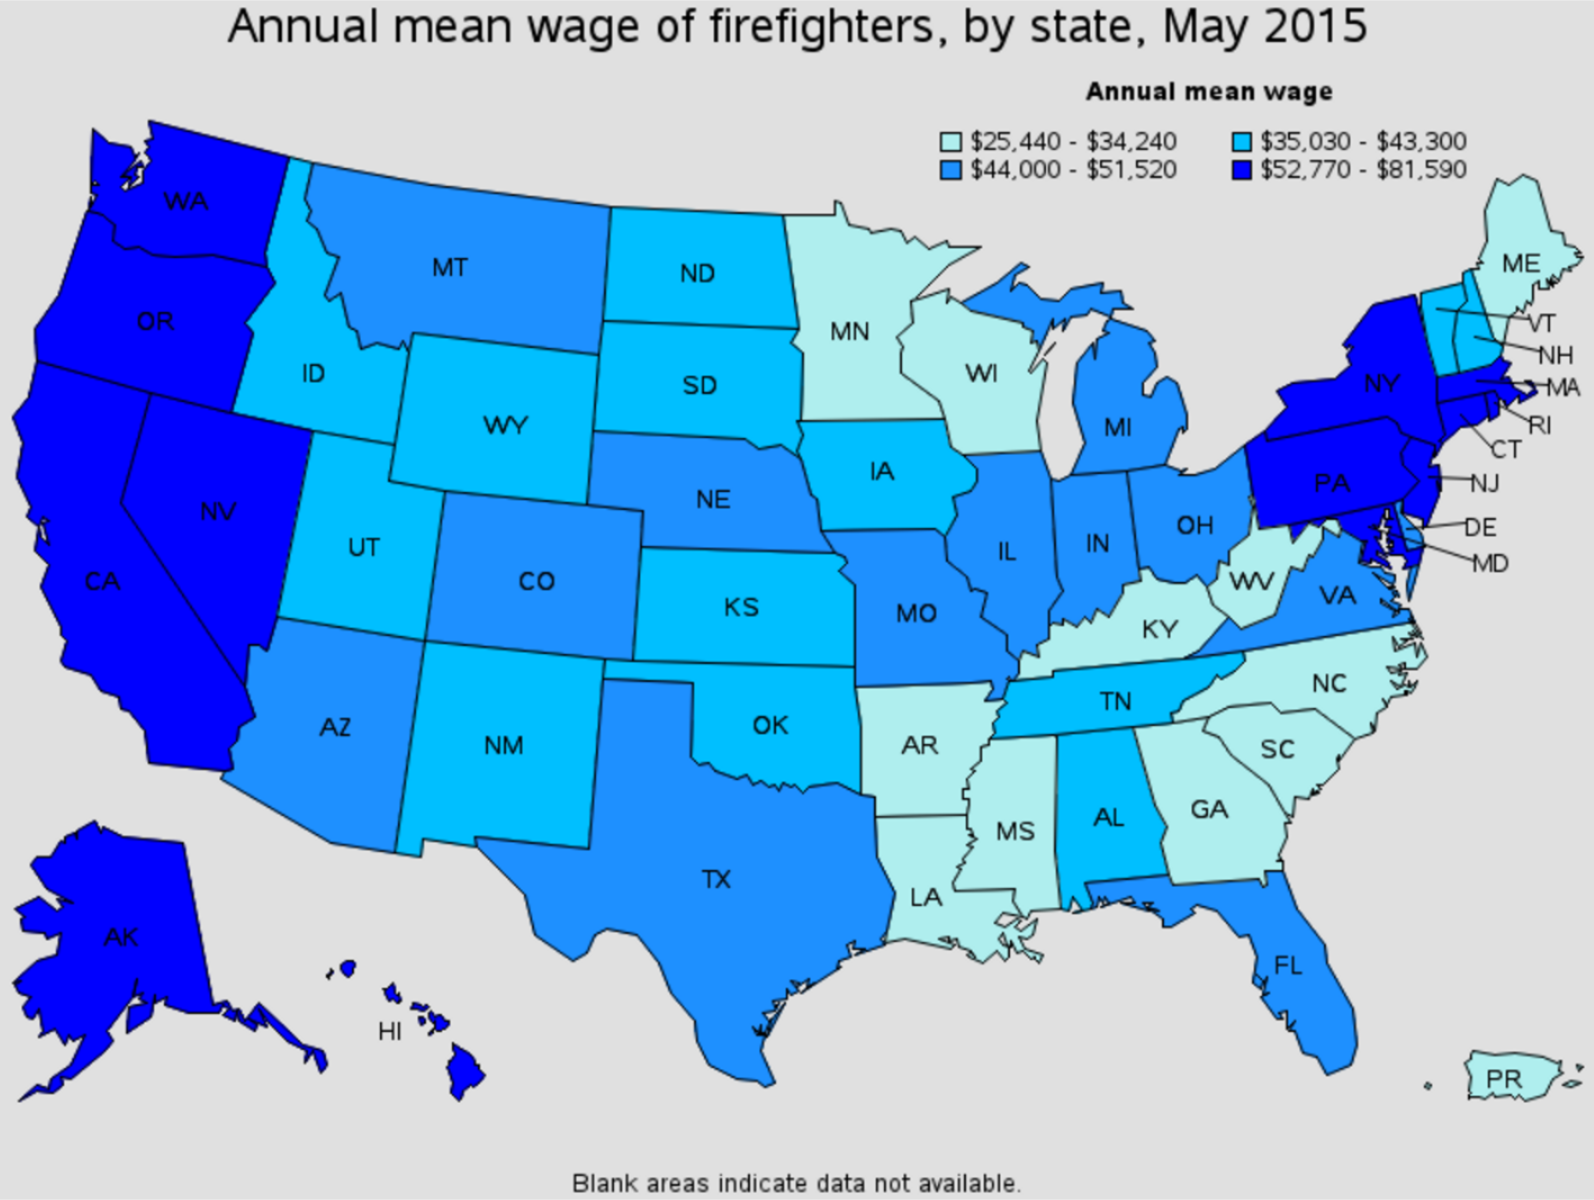 firefighter average salary by state Warwick Rhode Island